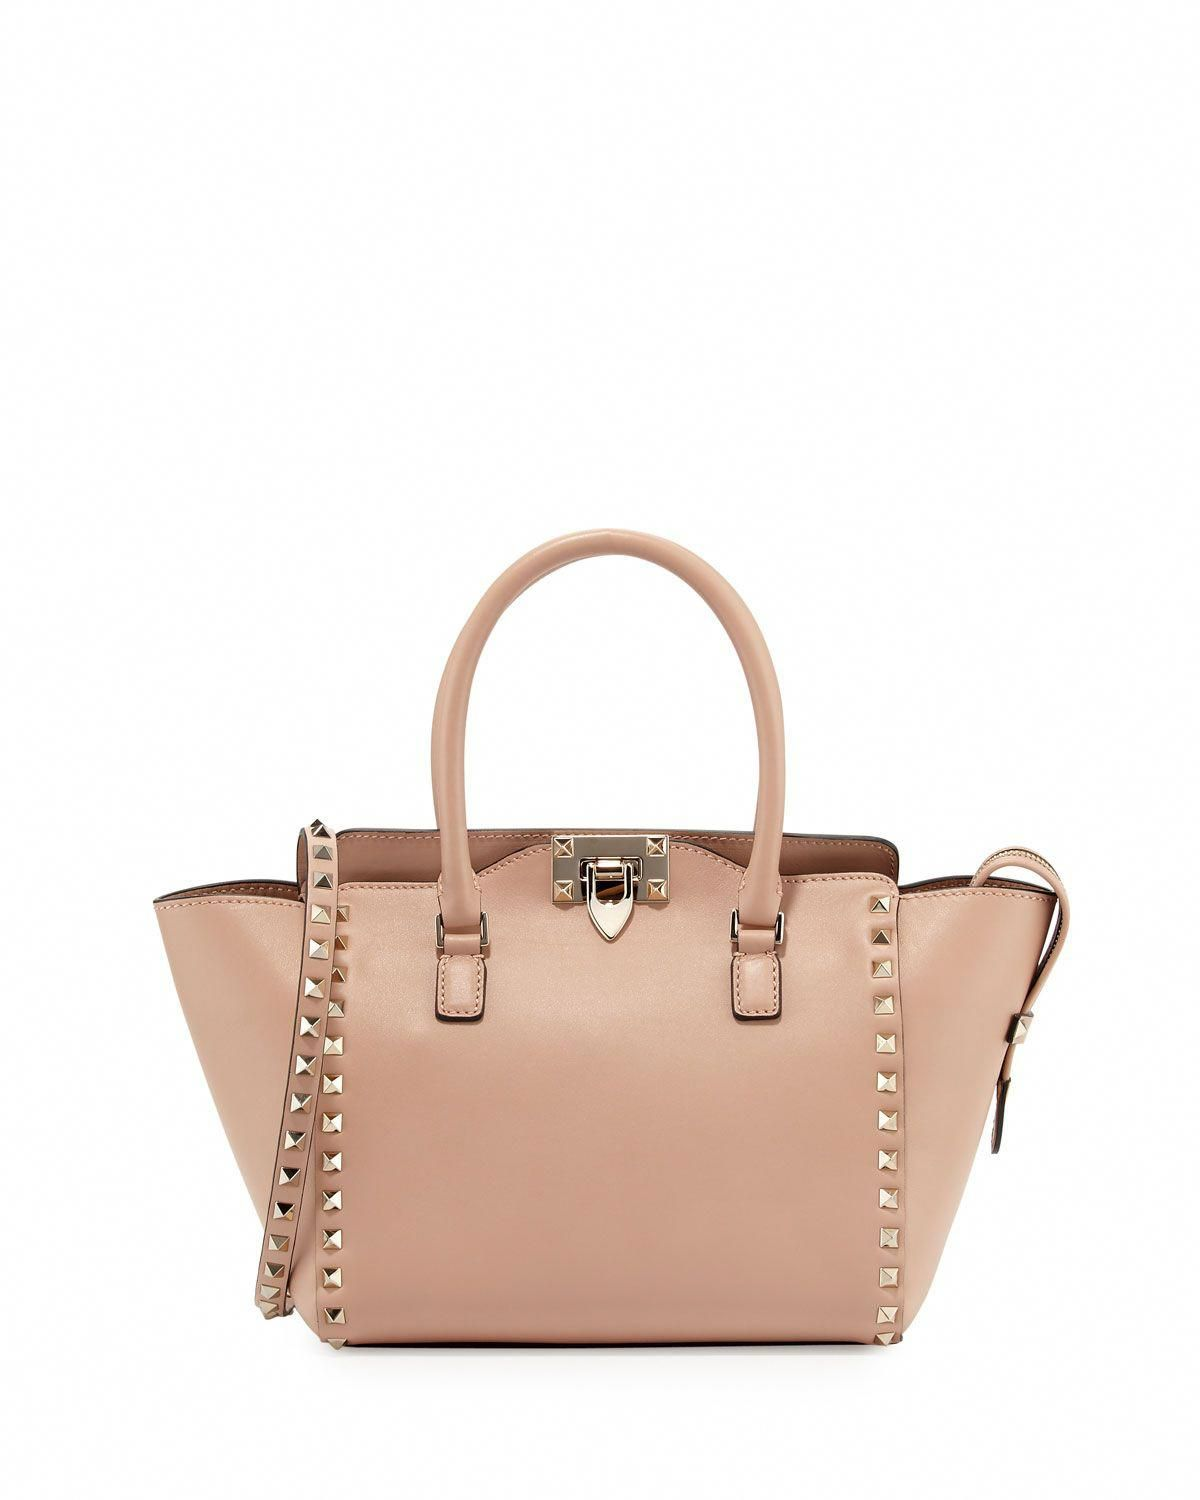 7d8b0a1d8b9 Red Valentino Small Shopper Double-Handle Rockstud Tote Bag, Taupe (Brown)